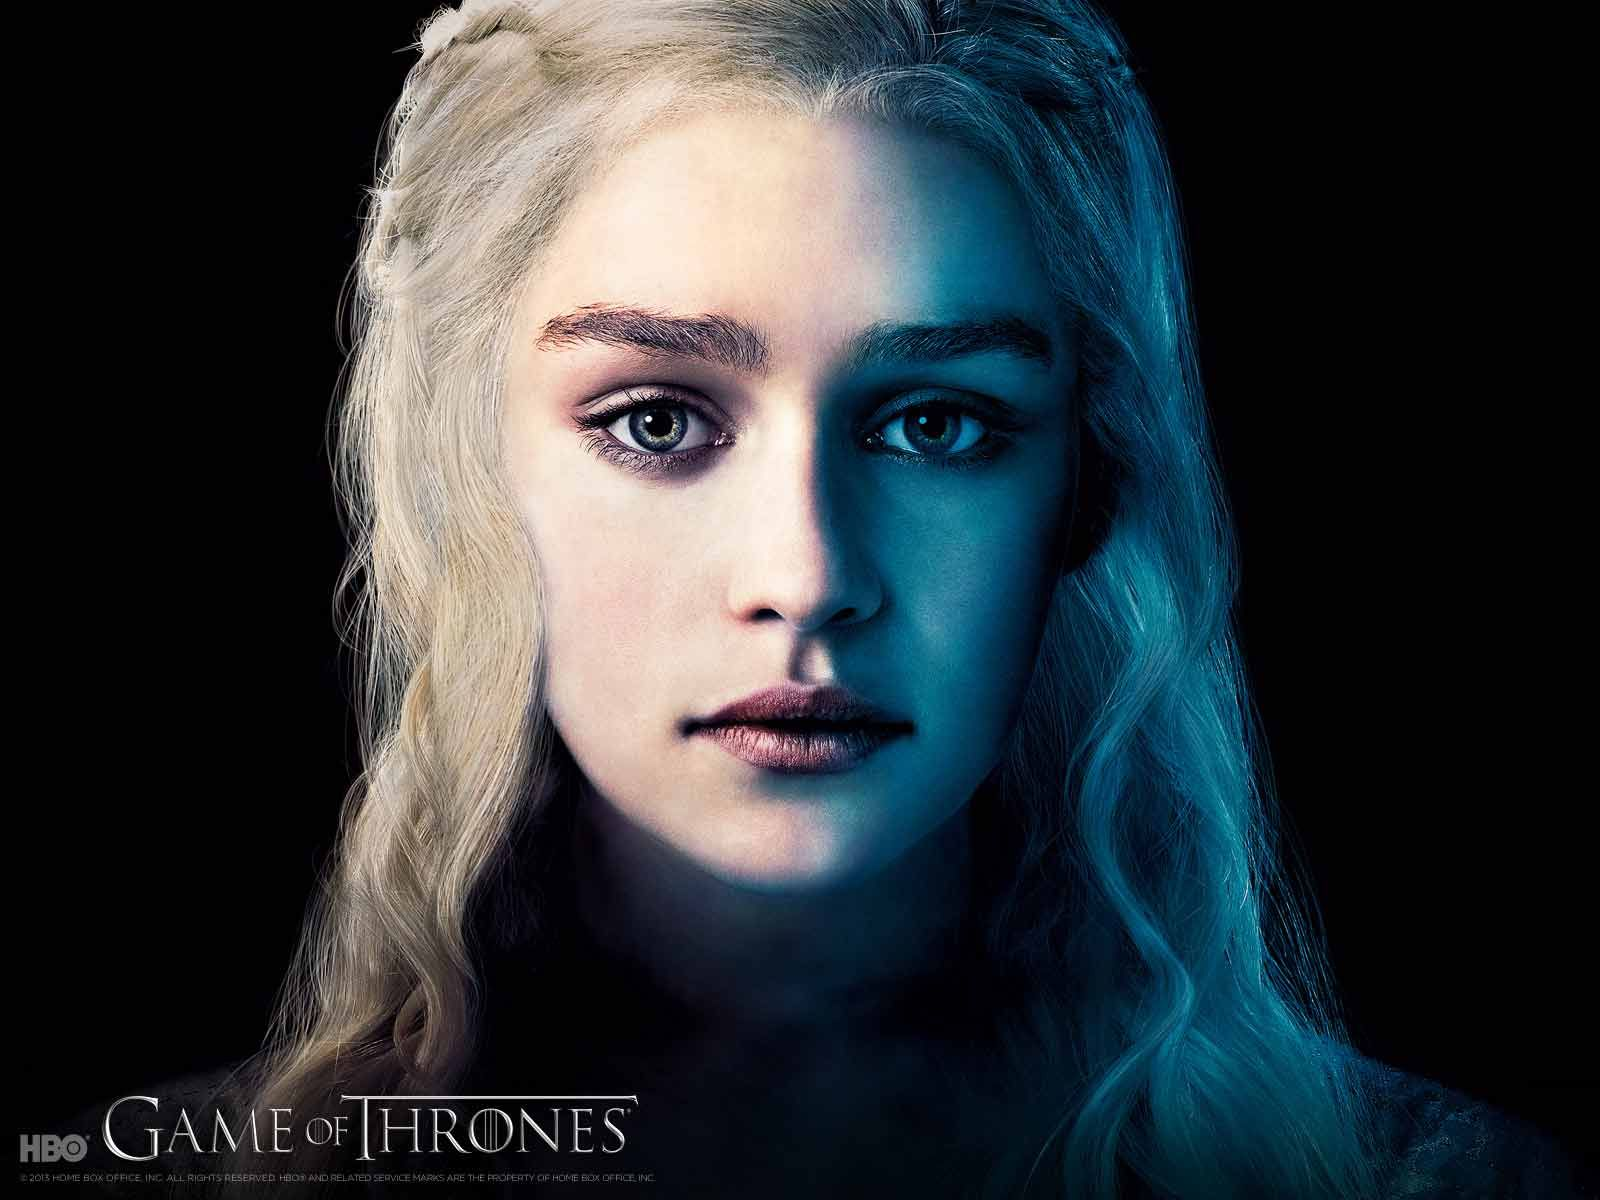 khaleesi backgrounds game of thrones hd new game of khaleesi backgrounds game of thrones hd new game of thrones khaleesi